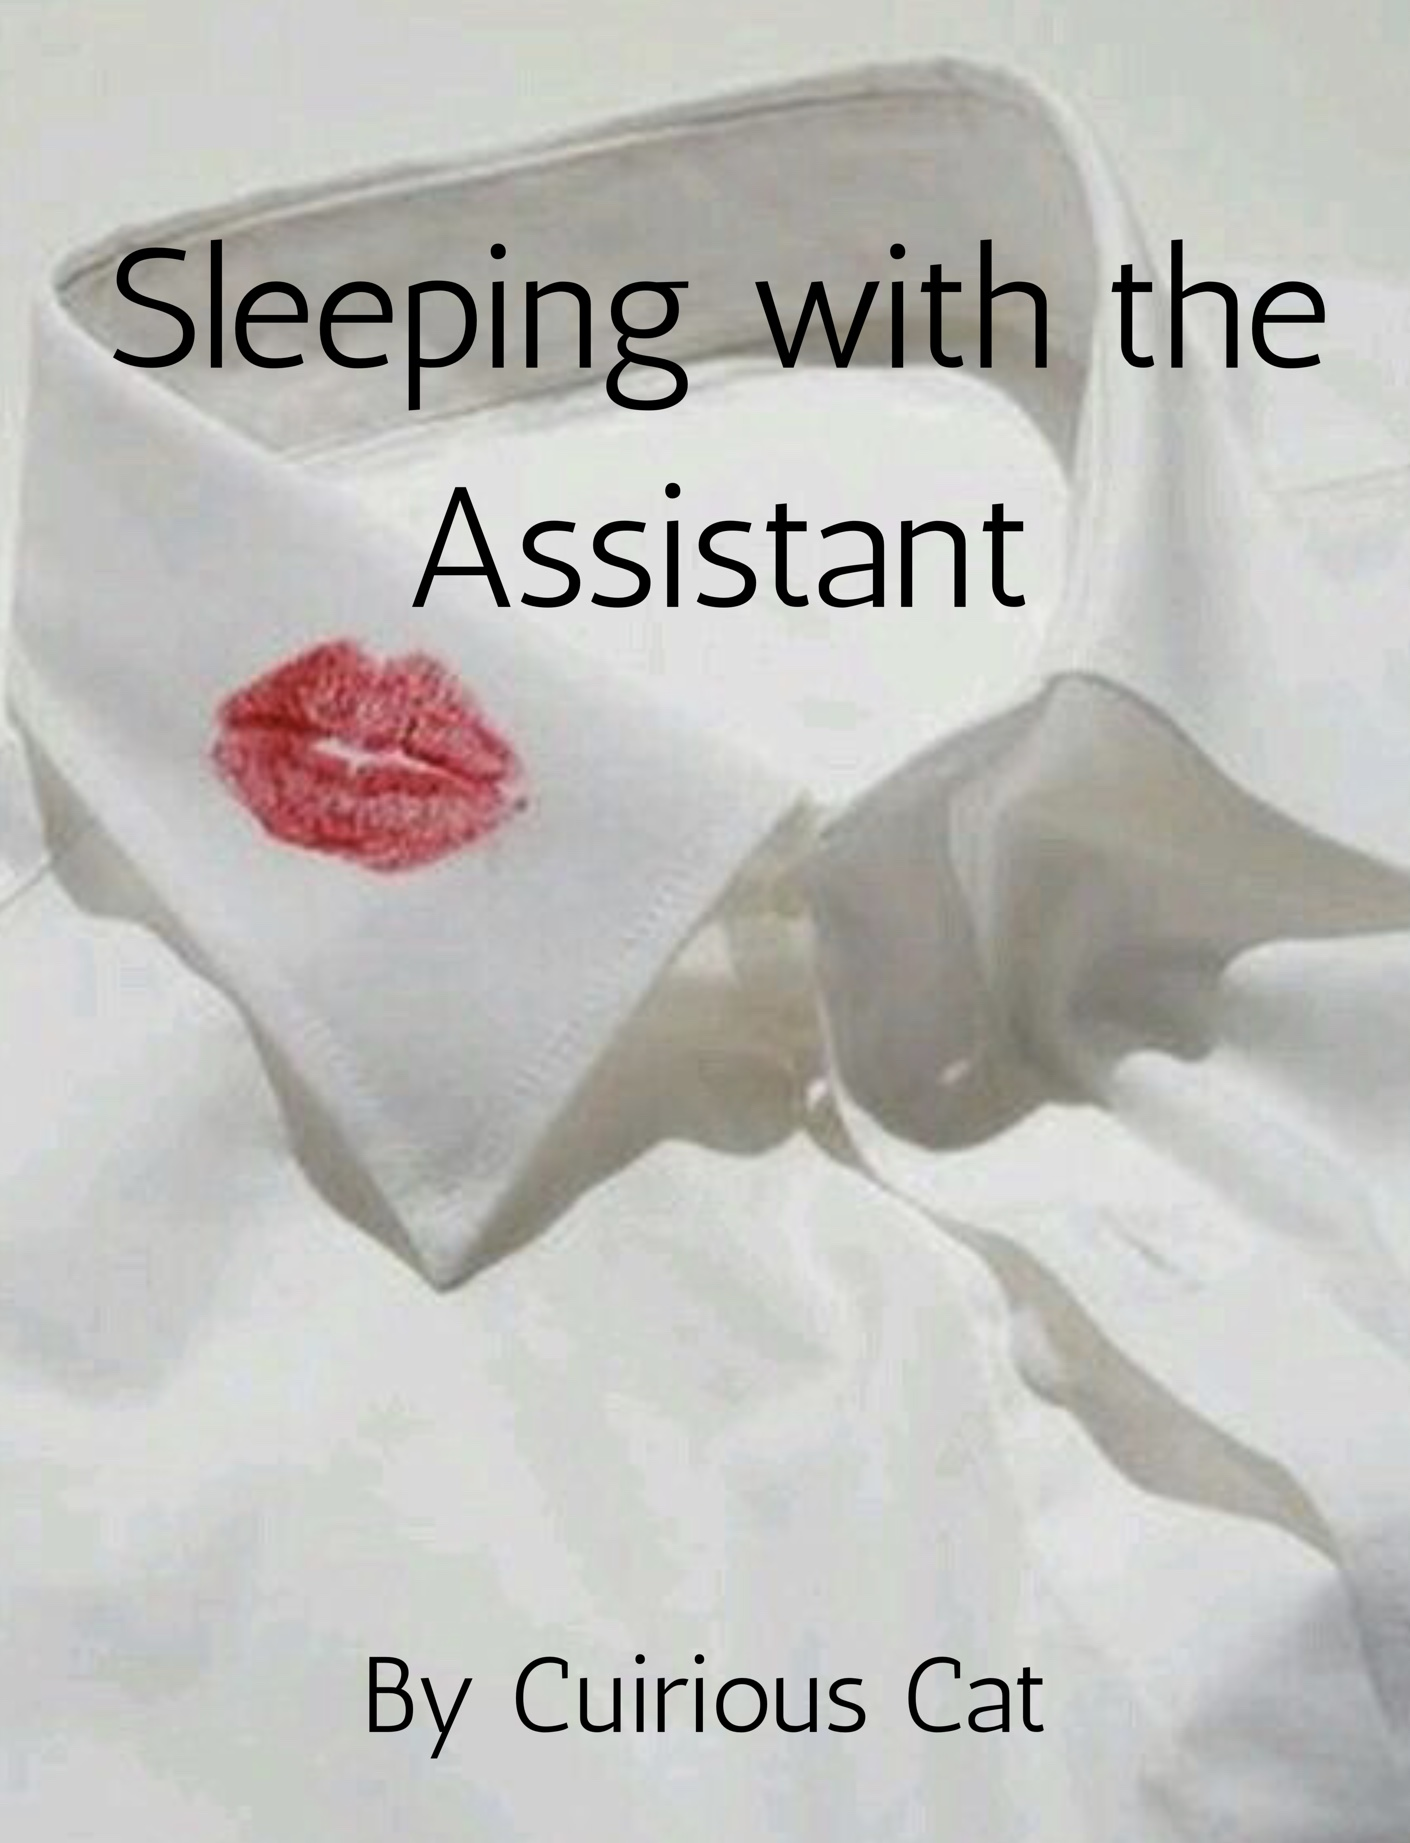 Sleeping with the Assistant